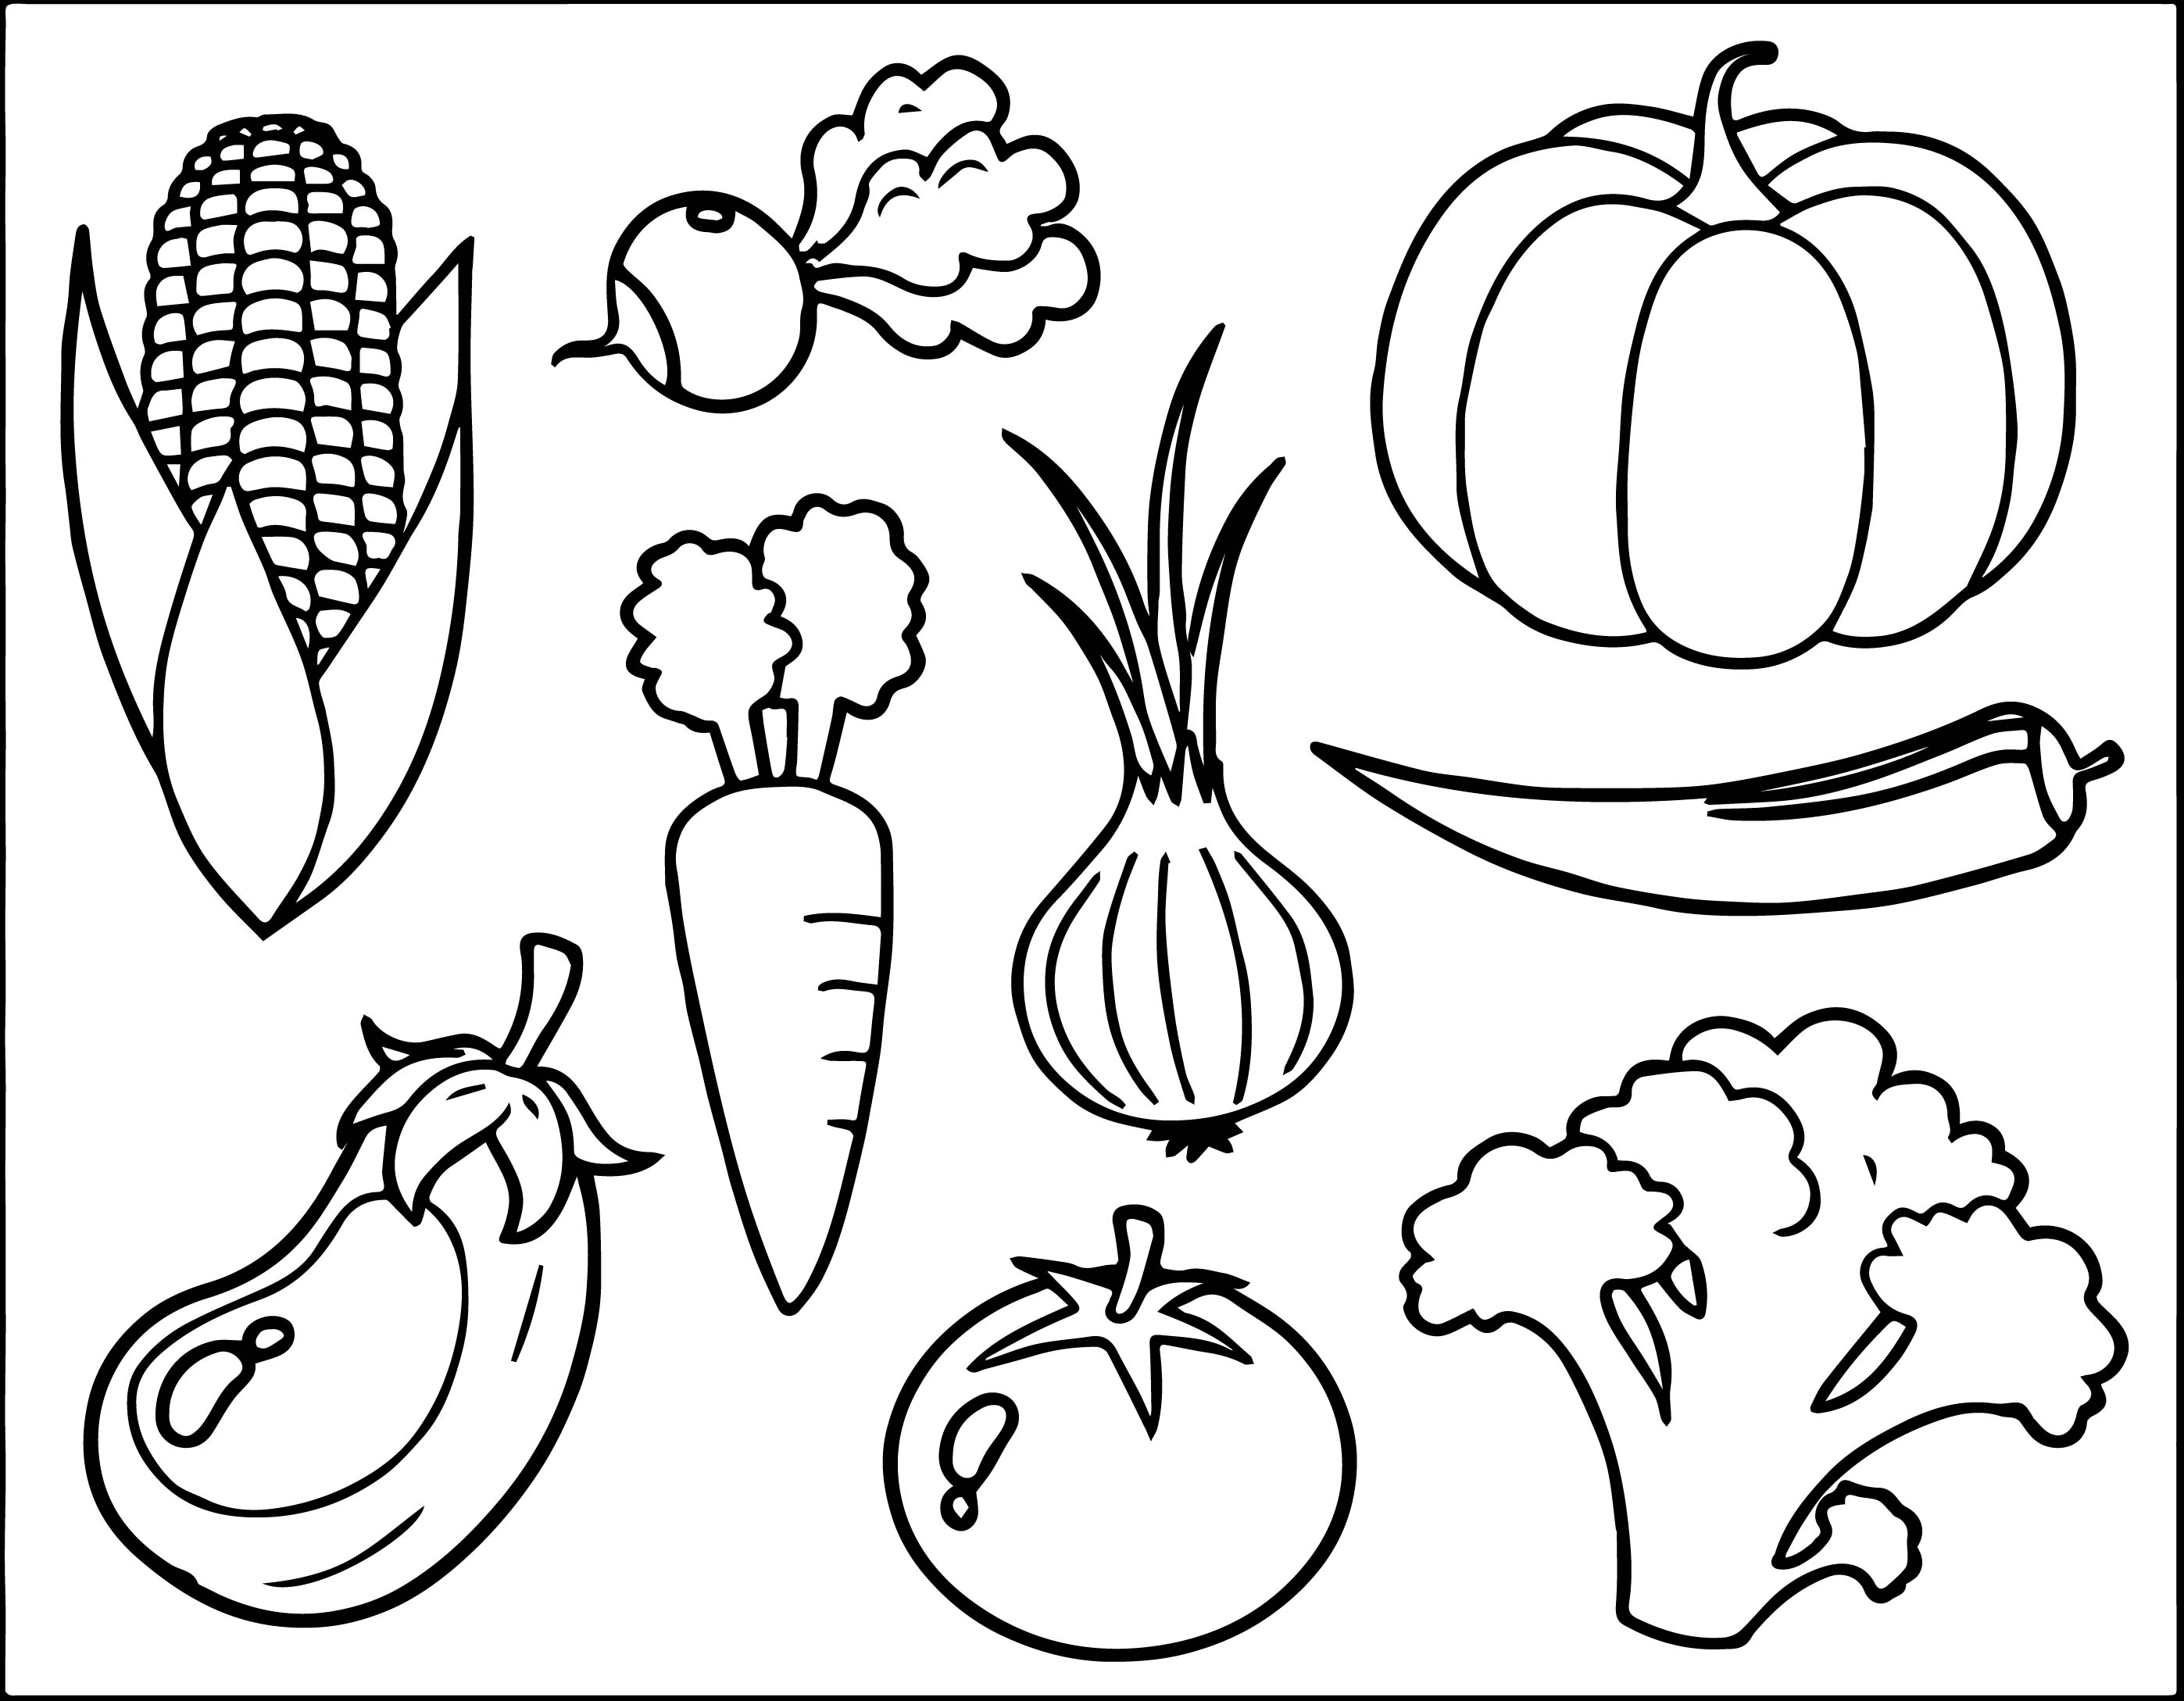 vegetables coloring sheets top 10 free printable vegetables coloring pages online coloring sheets vegetables